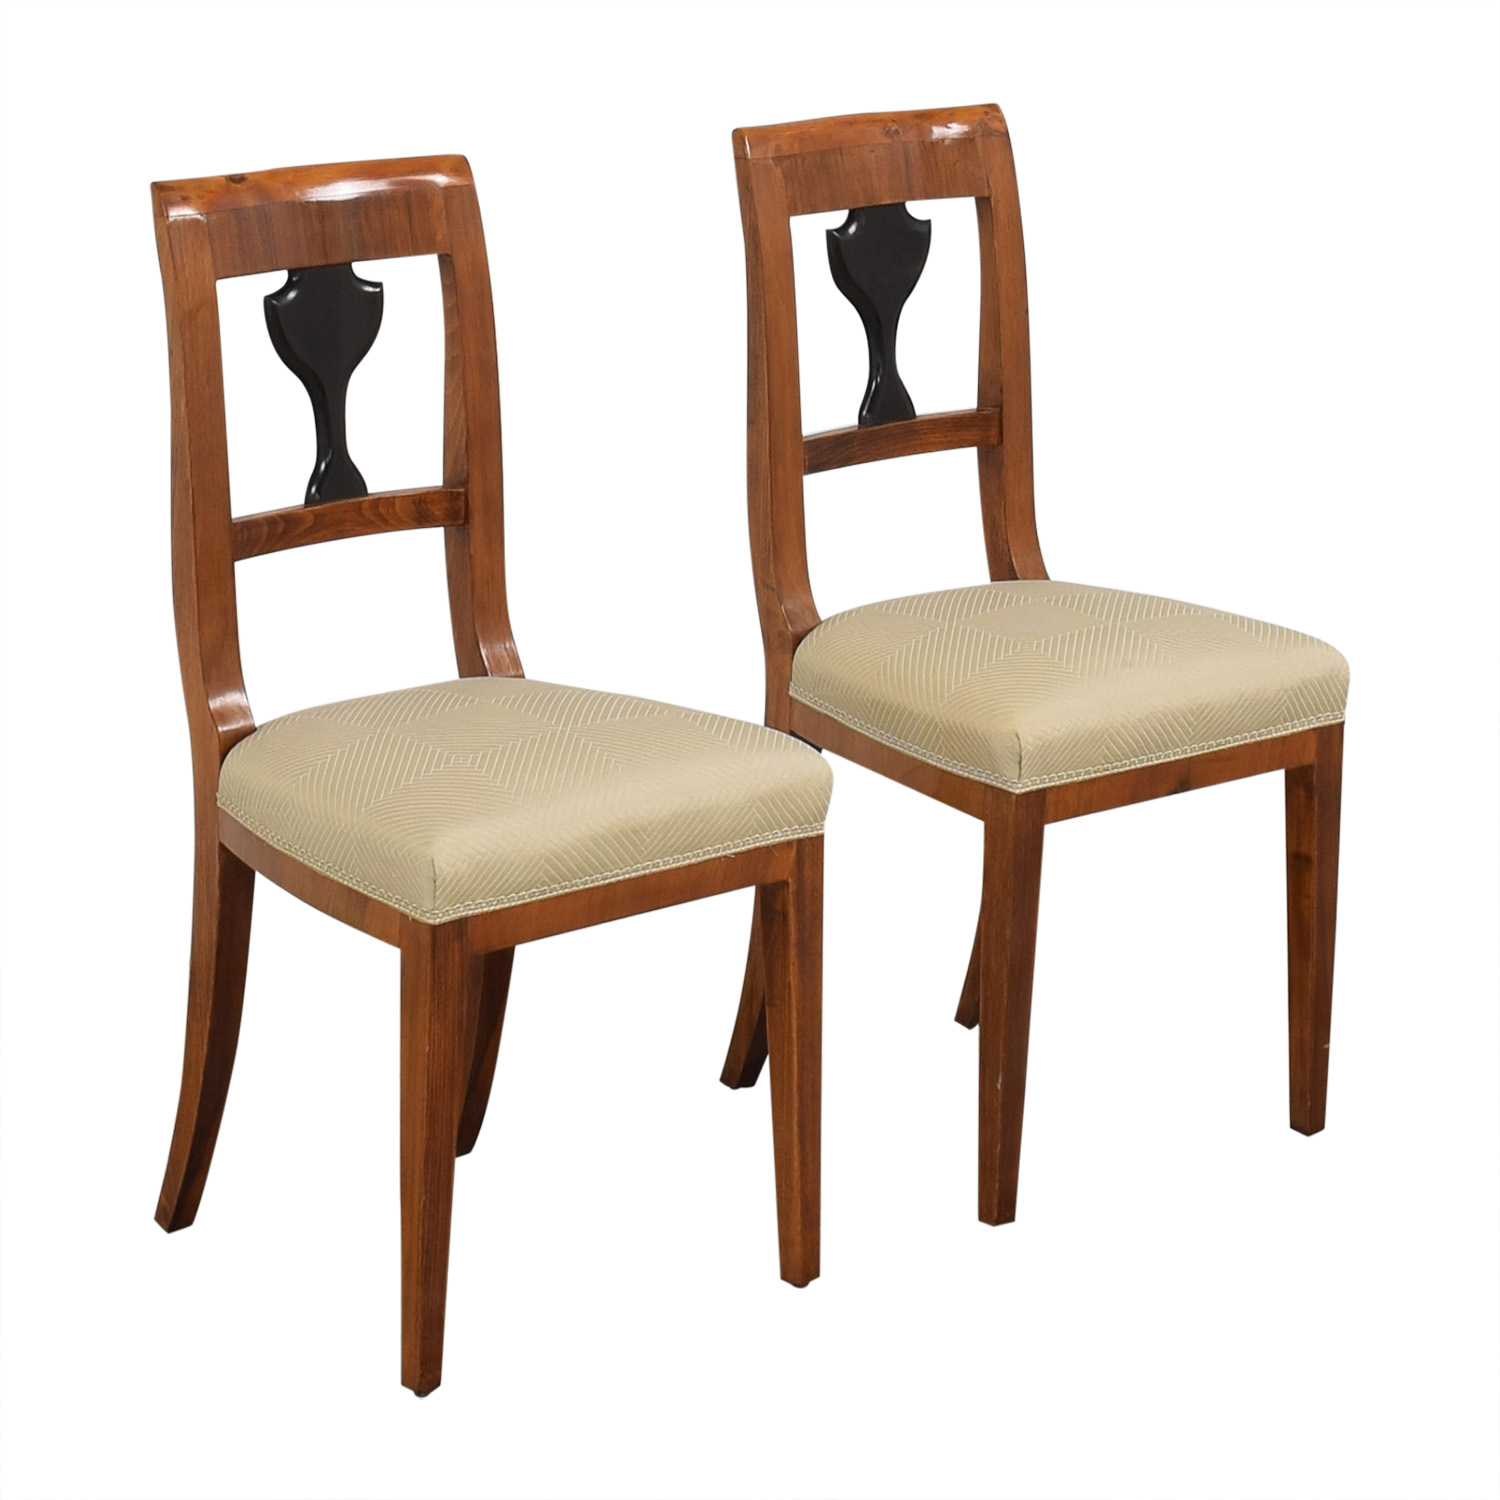 ABC Carpet & Home Upholstered Dining Chairs price